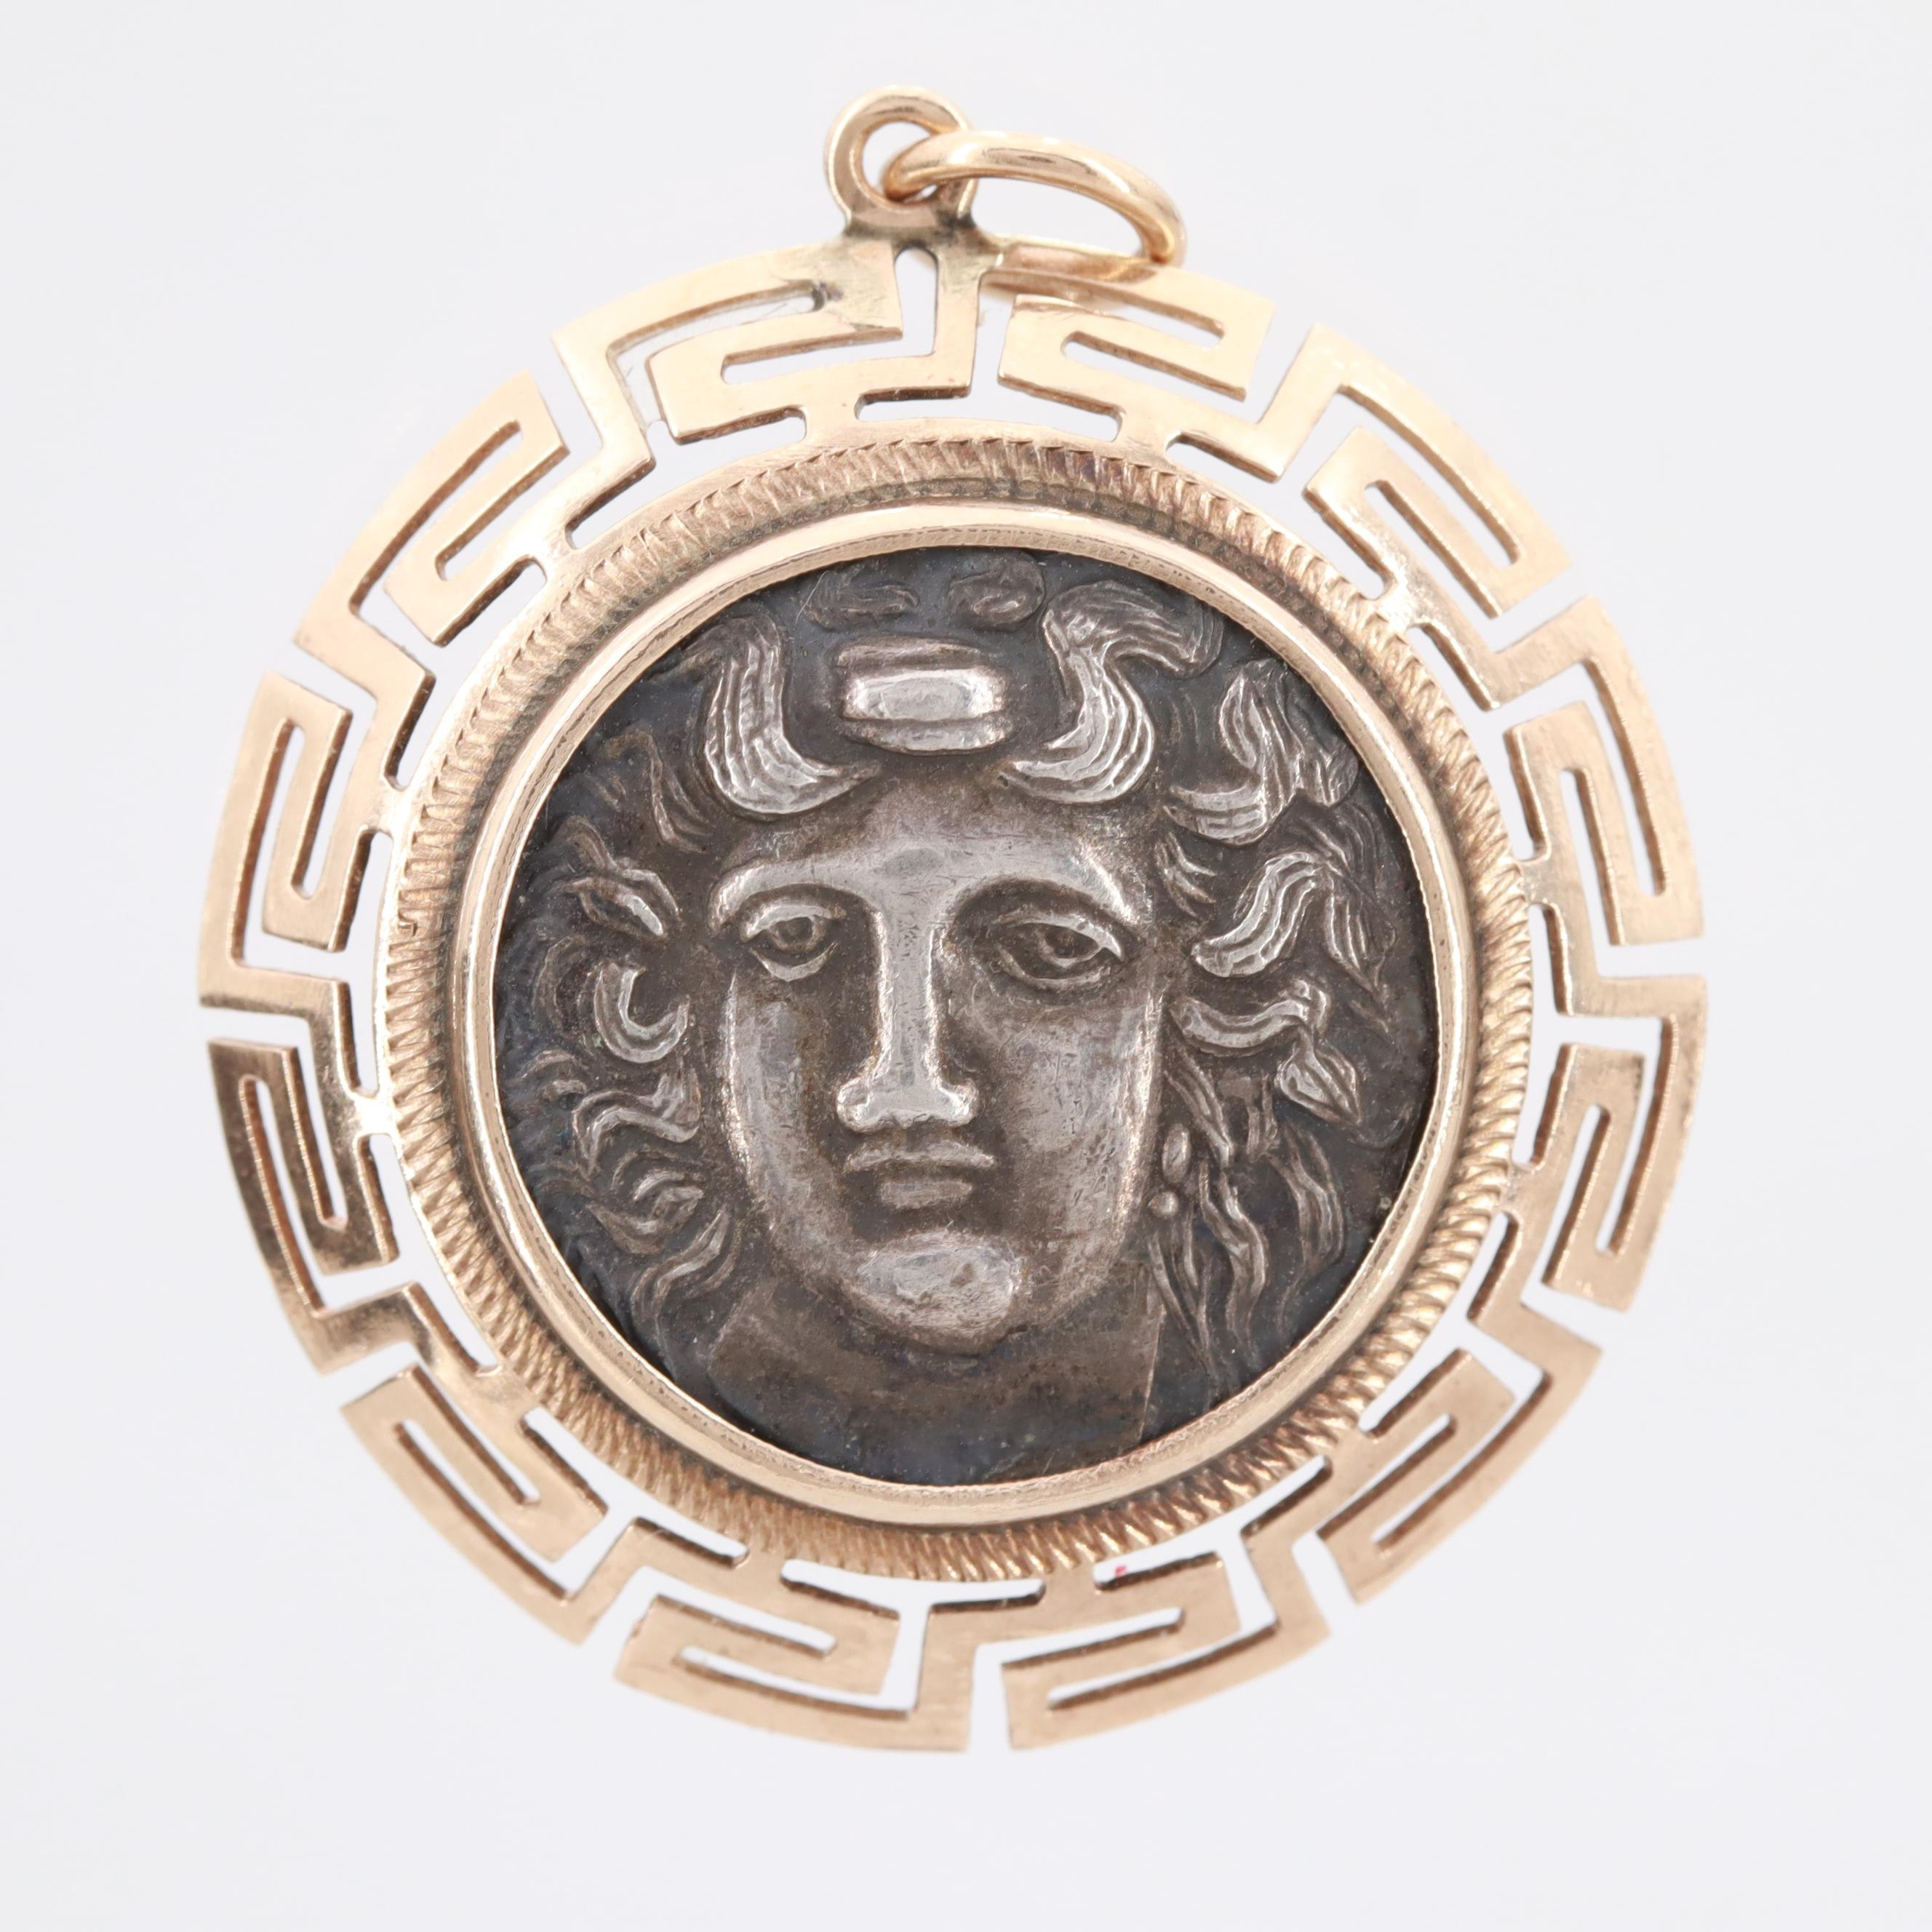 14K Yellow Gold Pendant with Sterling Reproduction Drachma Coin